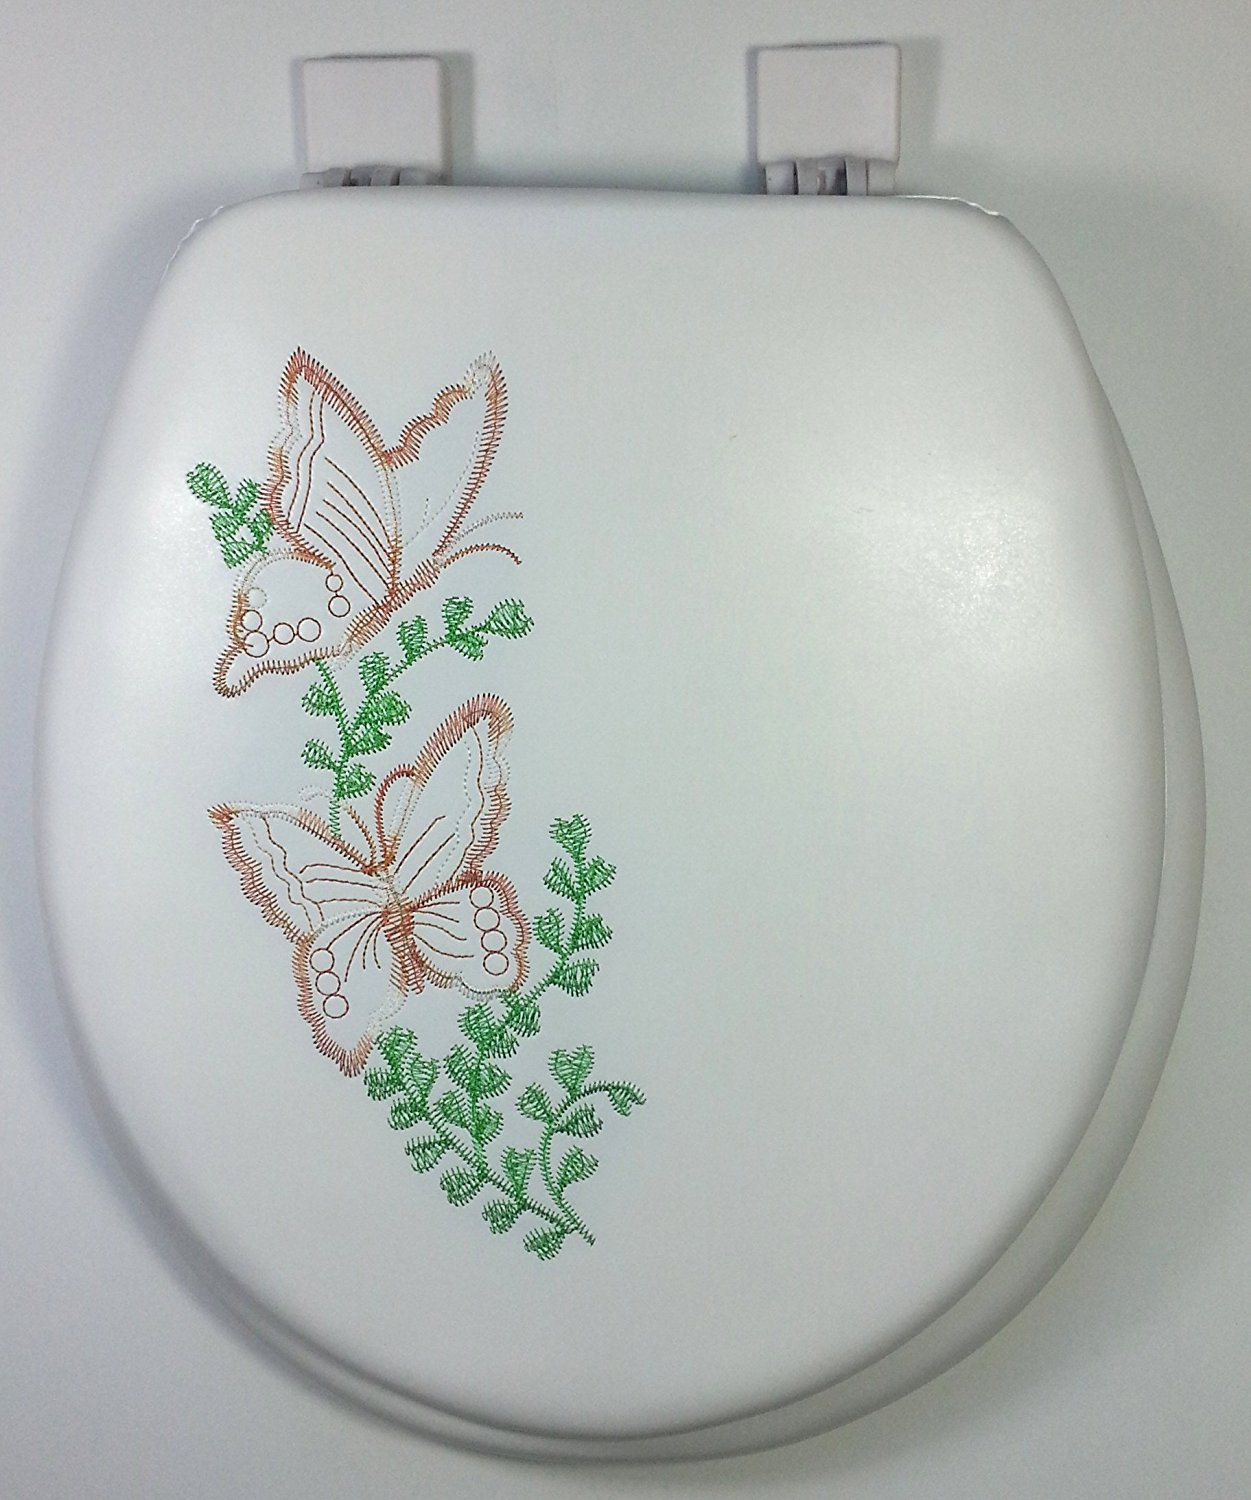 Padded Toilet Seat Elongated | Cushioned Toilet Seats | Padded Toilet Seat Cushion